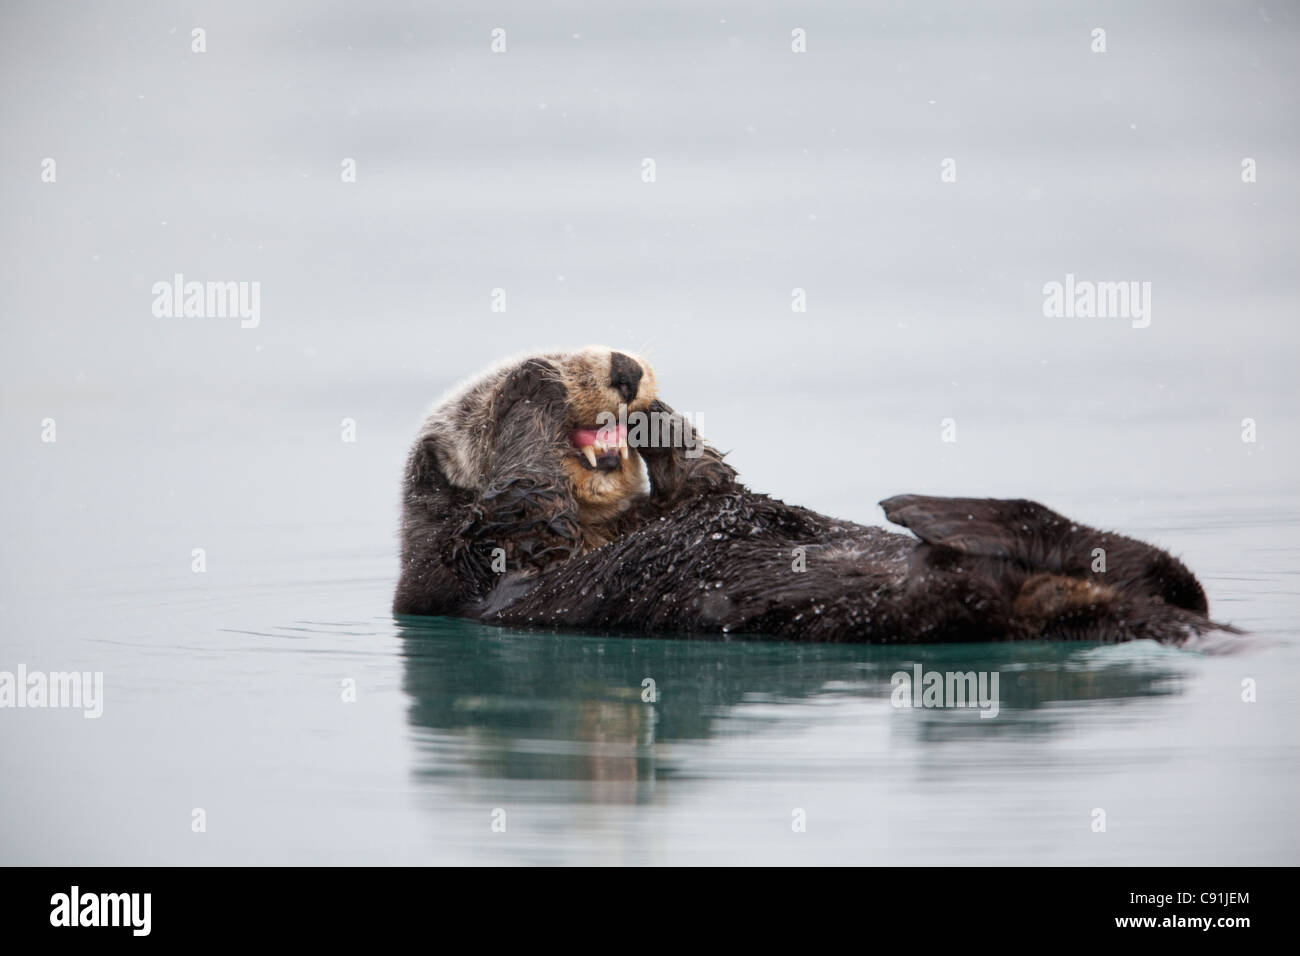 Sea otter floating on back and rubbing cheeks with paws exposing teeth, Prince William Sound, Southcentral Alaska, - Stock Image